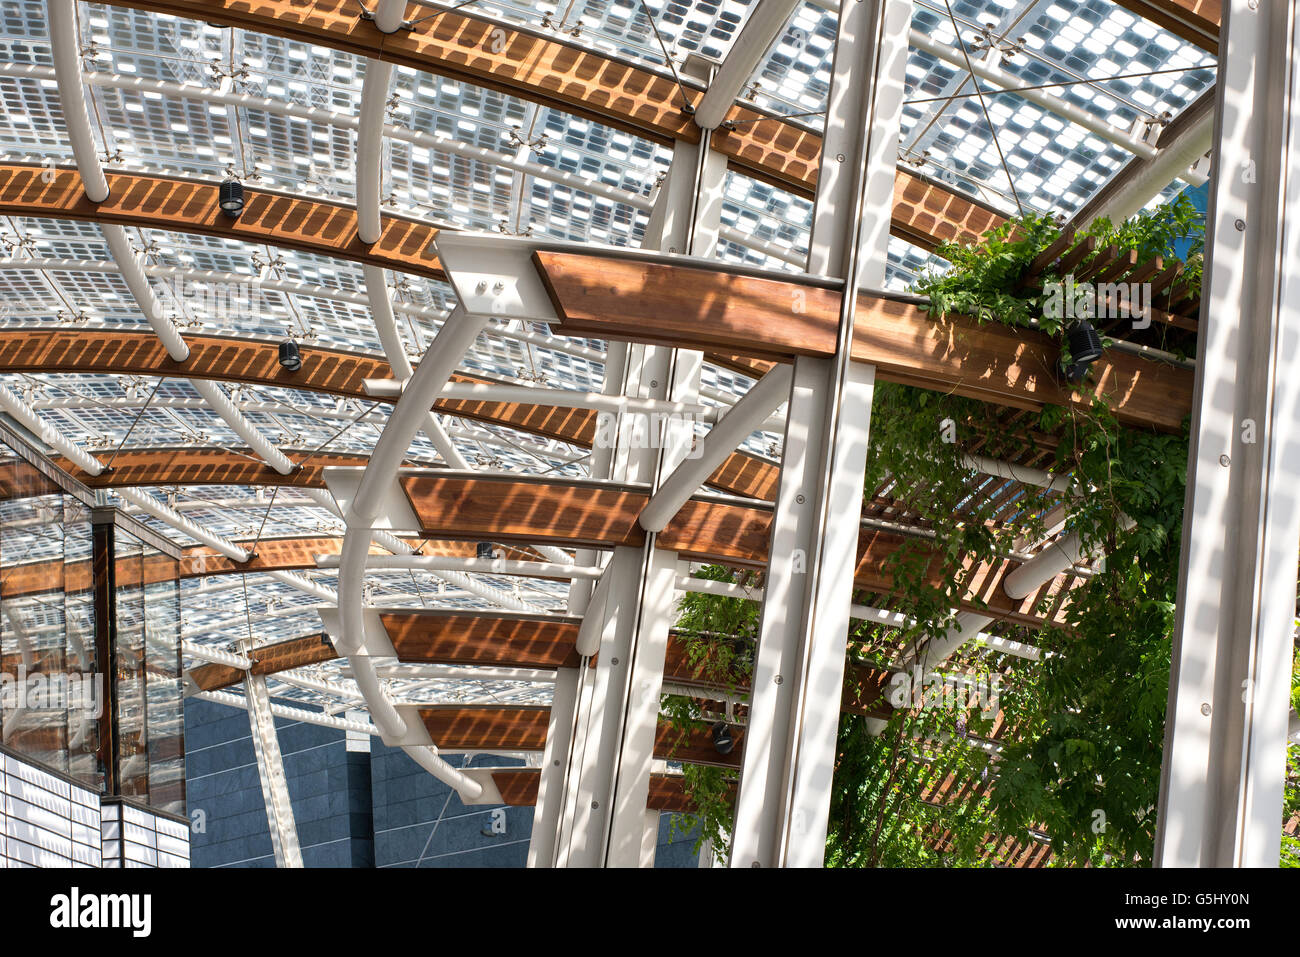 Architectural background of a modern roof structure on beams with a pattern of geometric squares - Stock Image